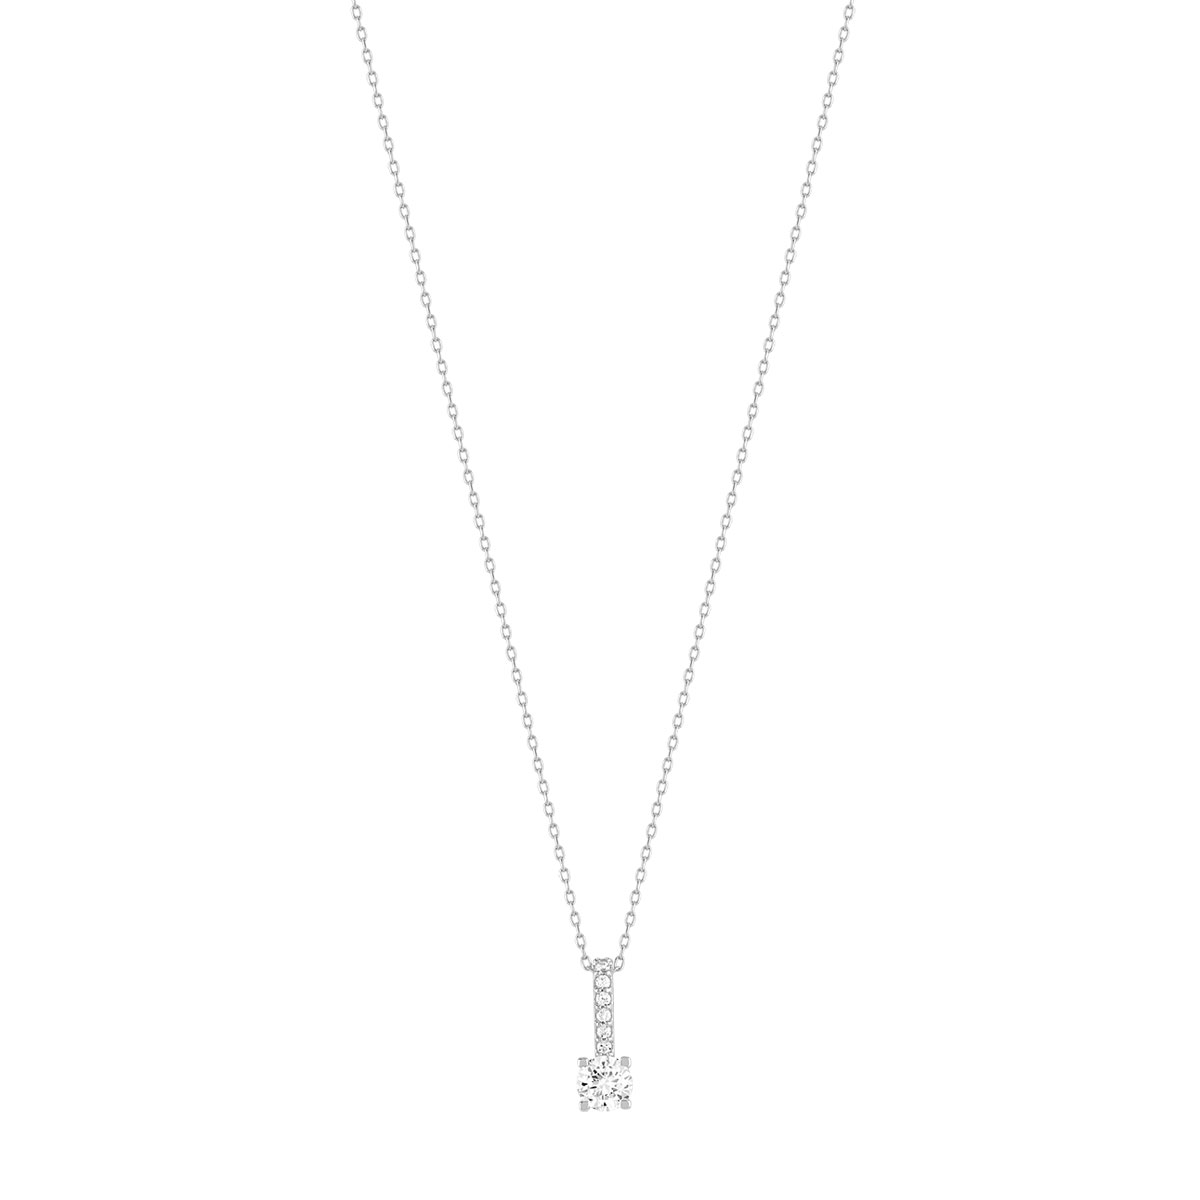 Collier or 375 blanc zirconia - vue 1